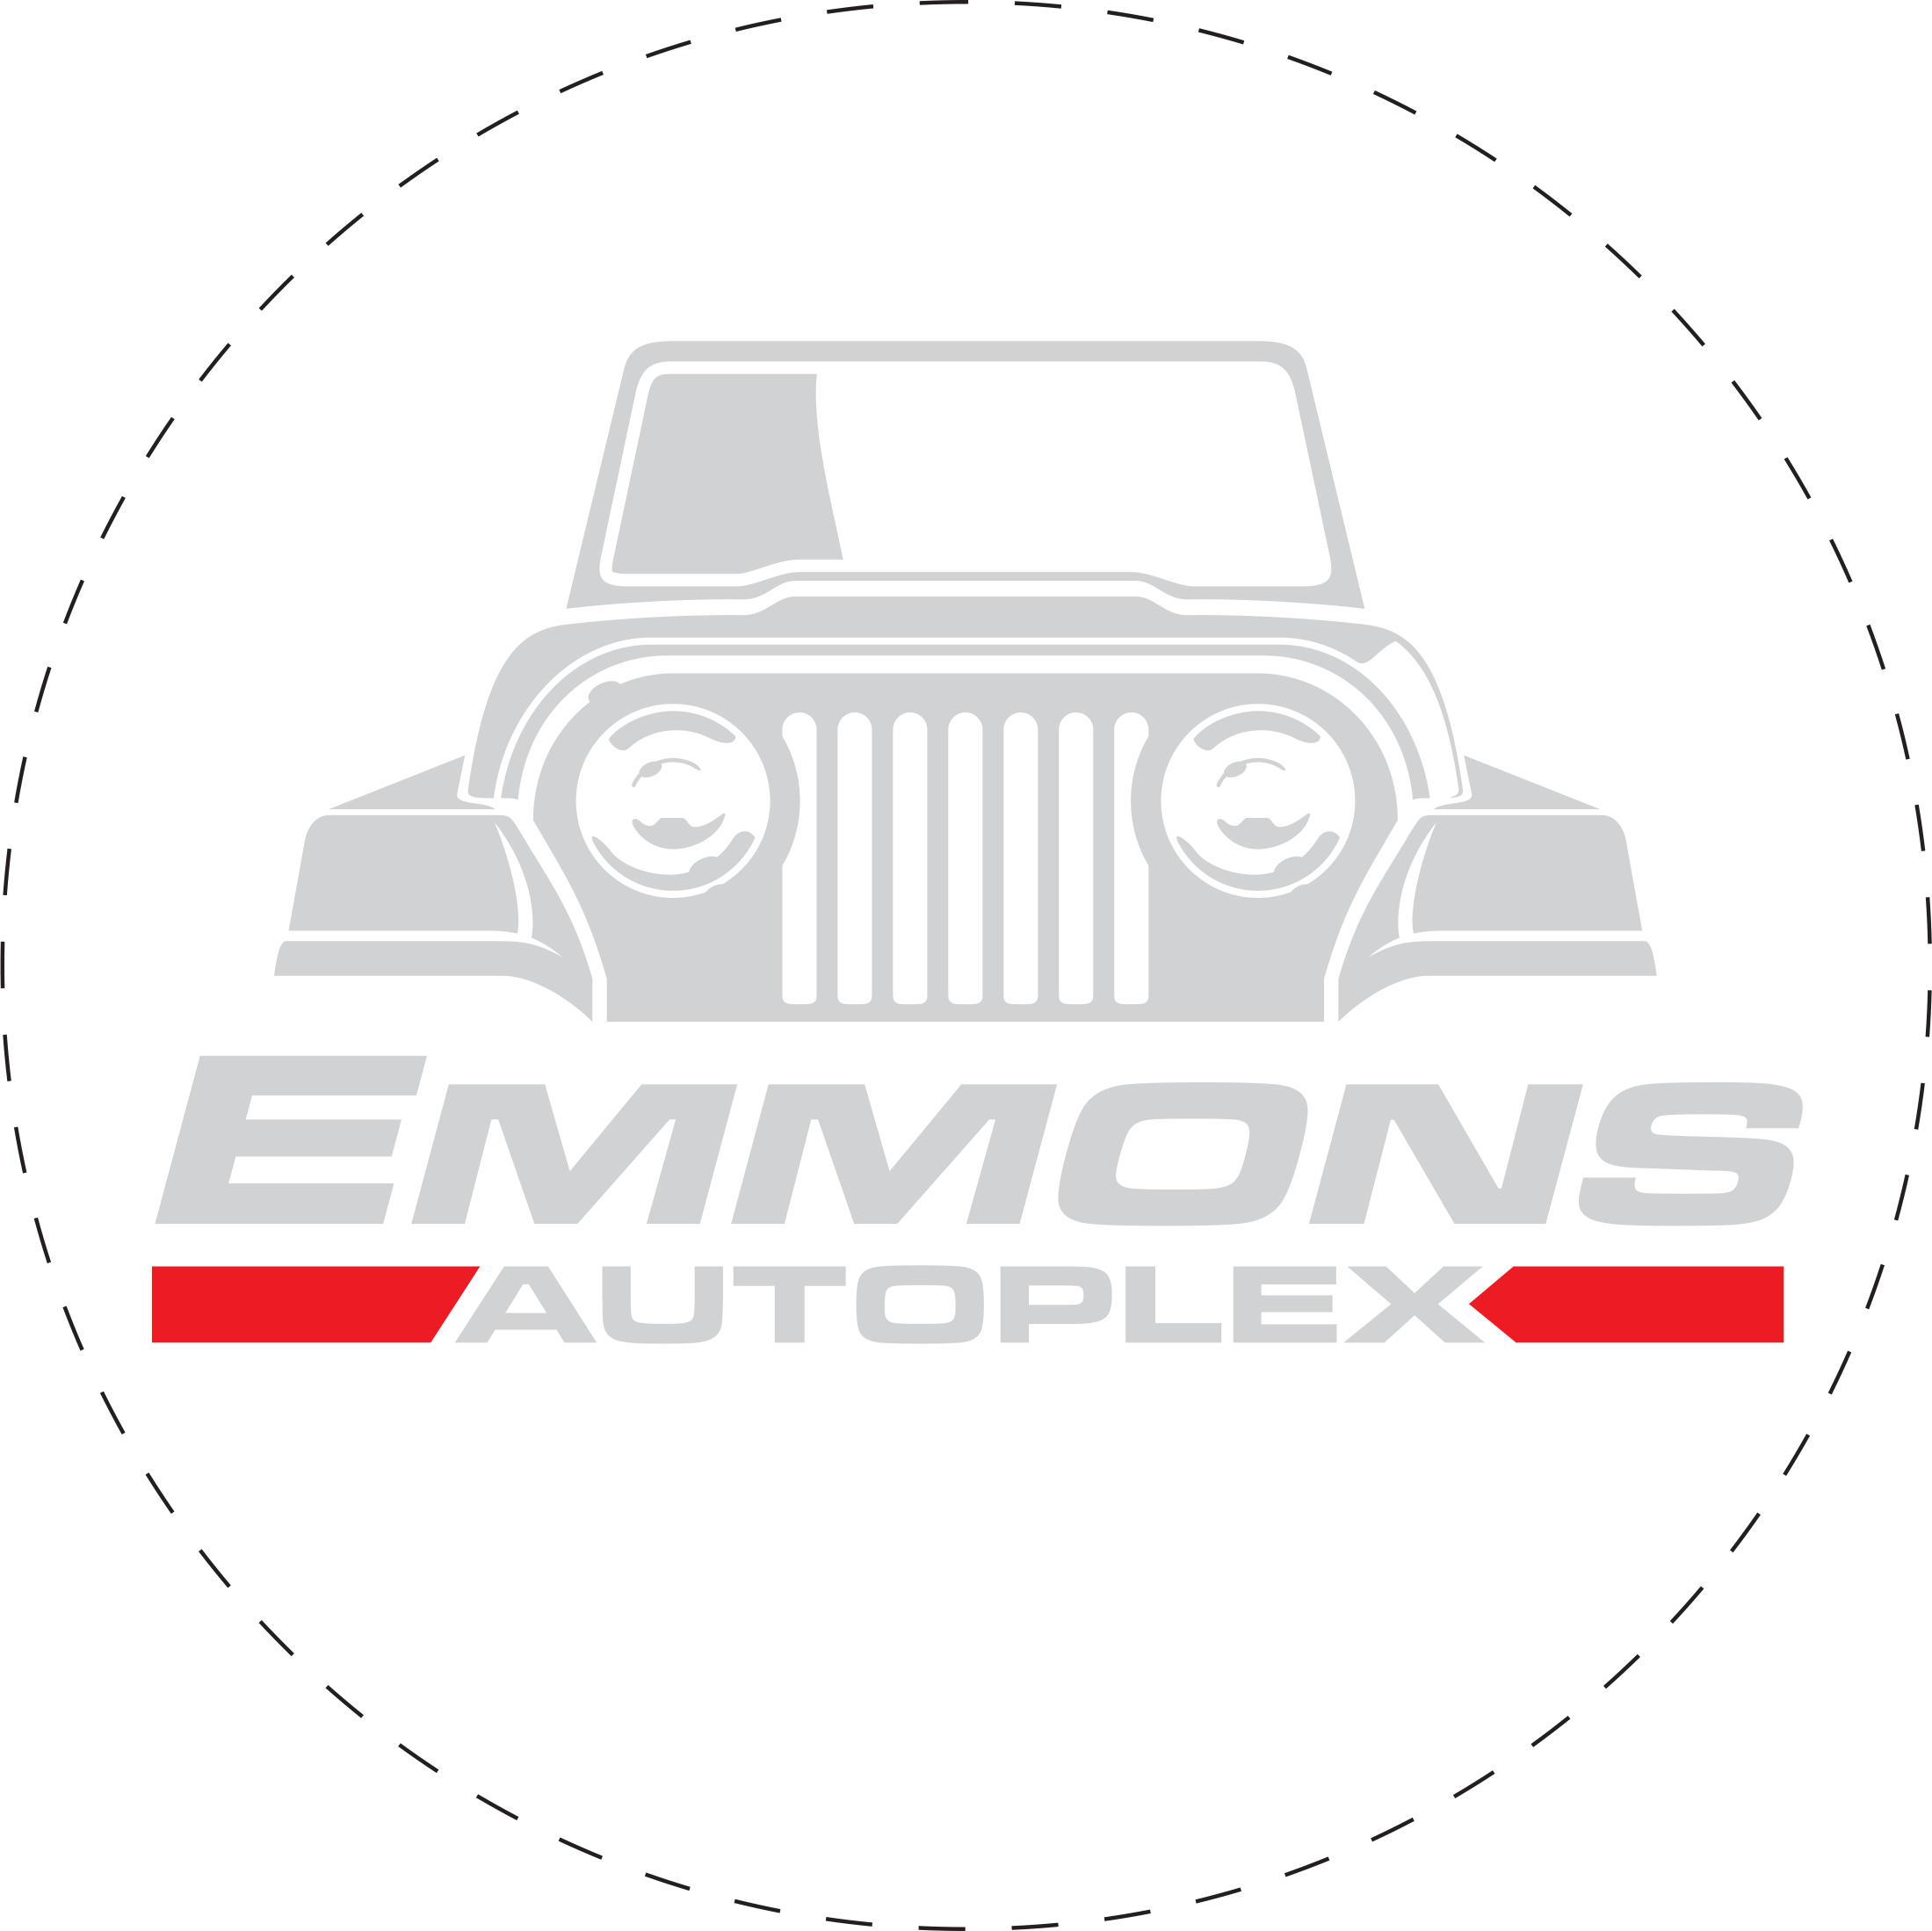 Emmons Autoplex is a Pre-Owned Auto Dealer